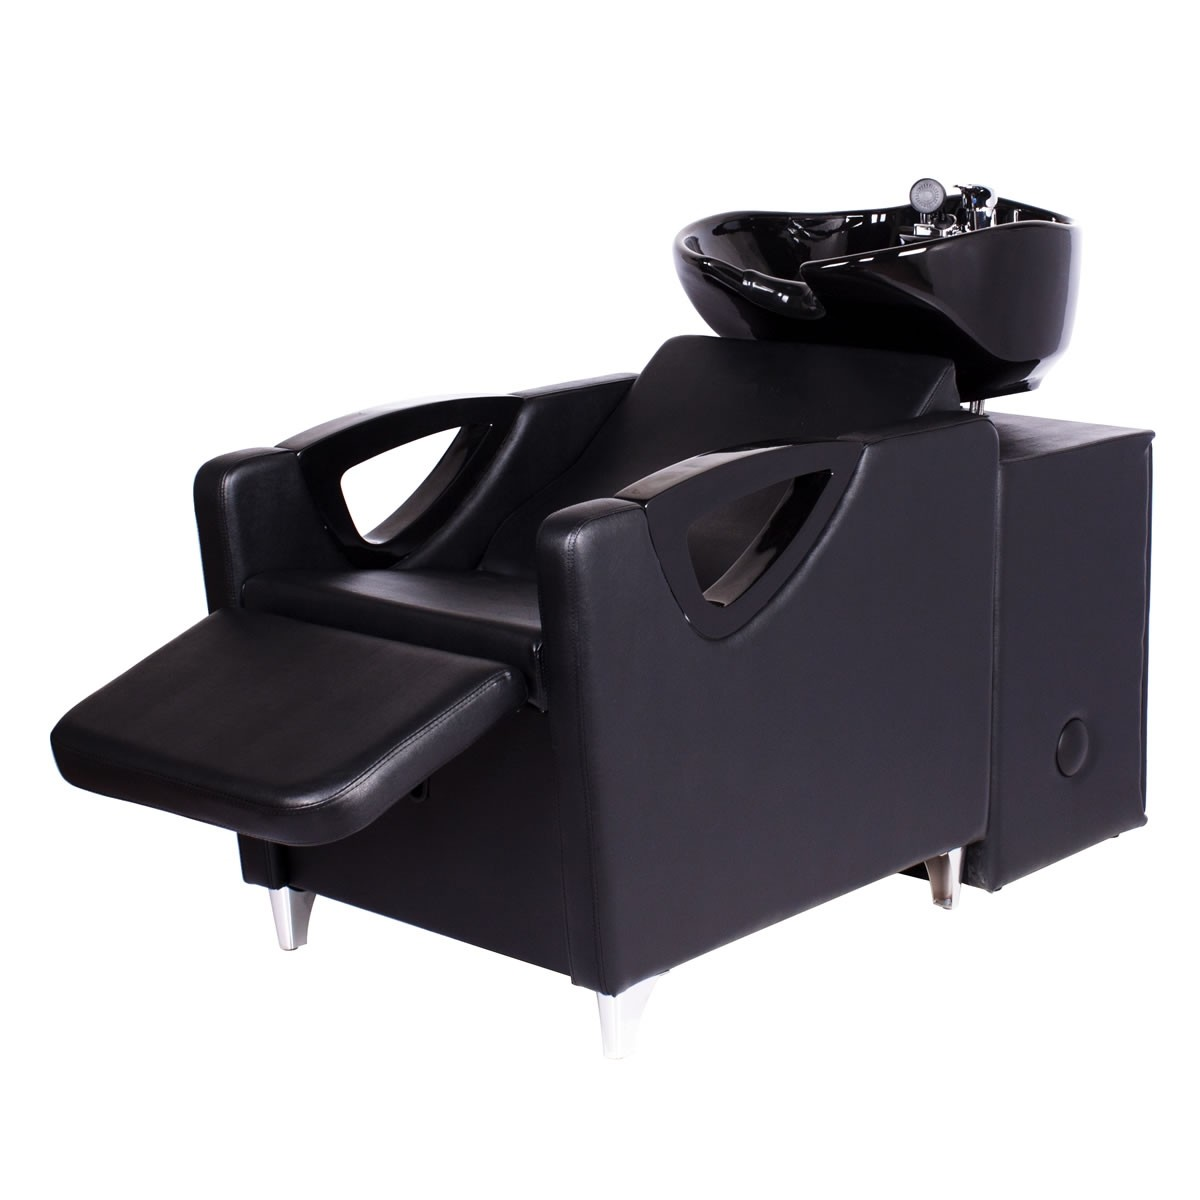 """PATTAYA"" Shampoo Backwash Unit, ""PATTAYA"" Backwash Shampoo Bowl, ""PATTAYA"" Backwash Shampoo System"